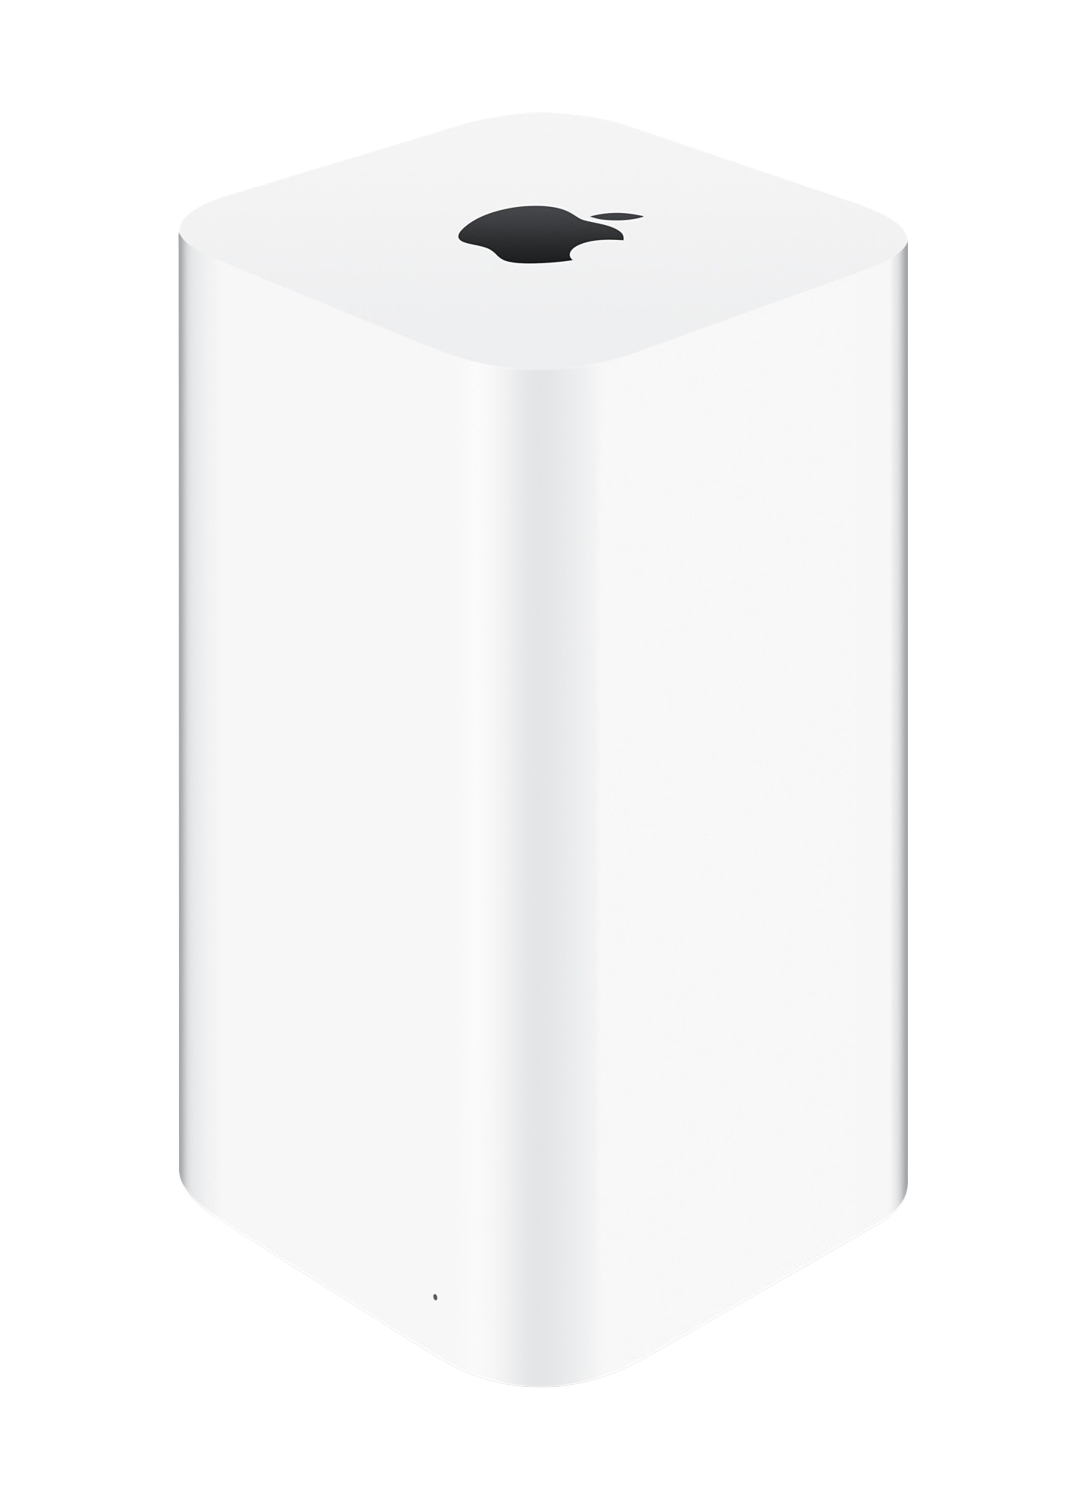 Apple AirPort Time Capsule 3TB Wi-Fi 3000GB White external hard drive